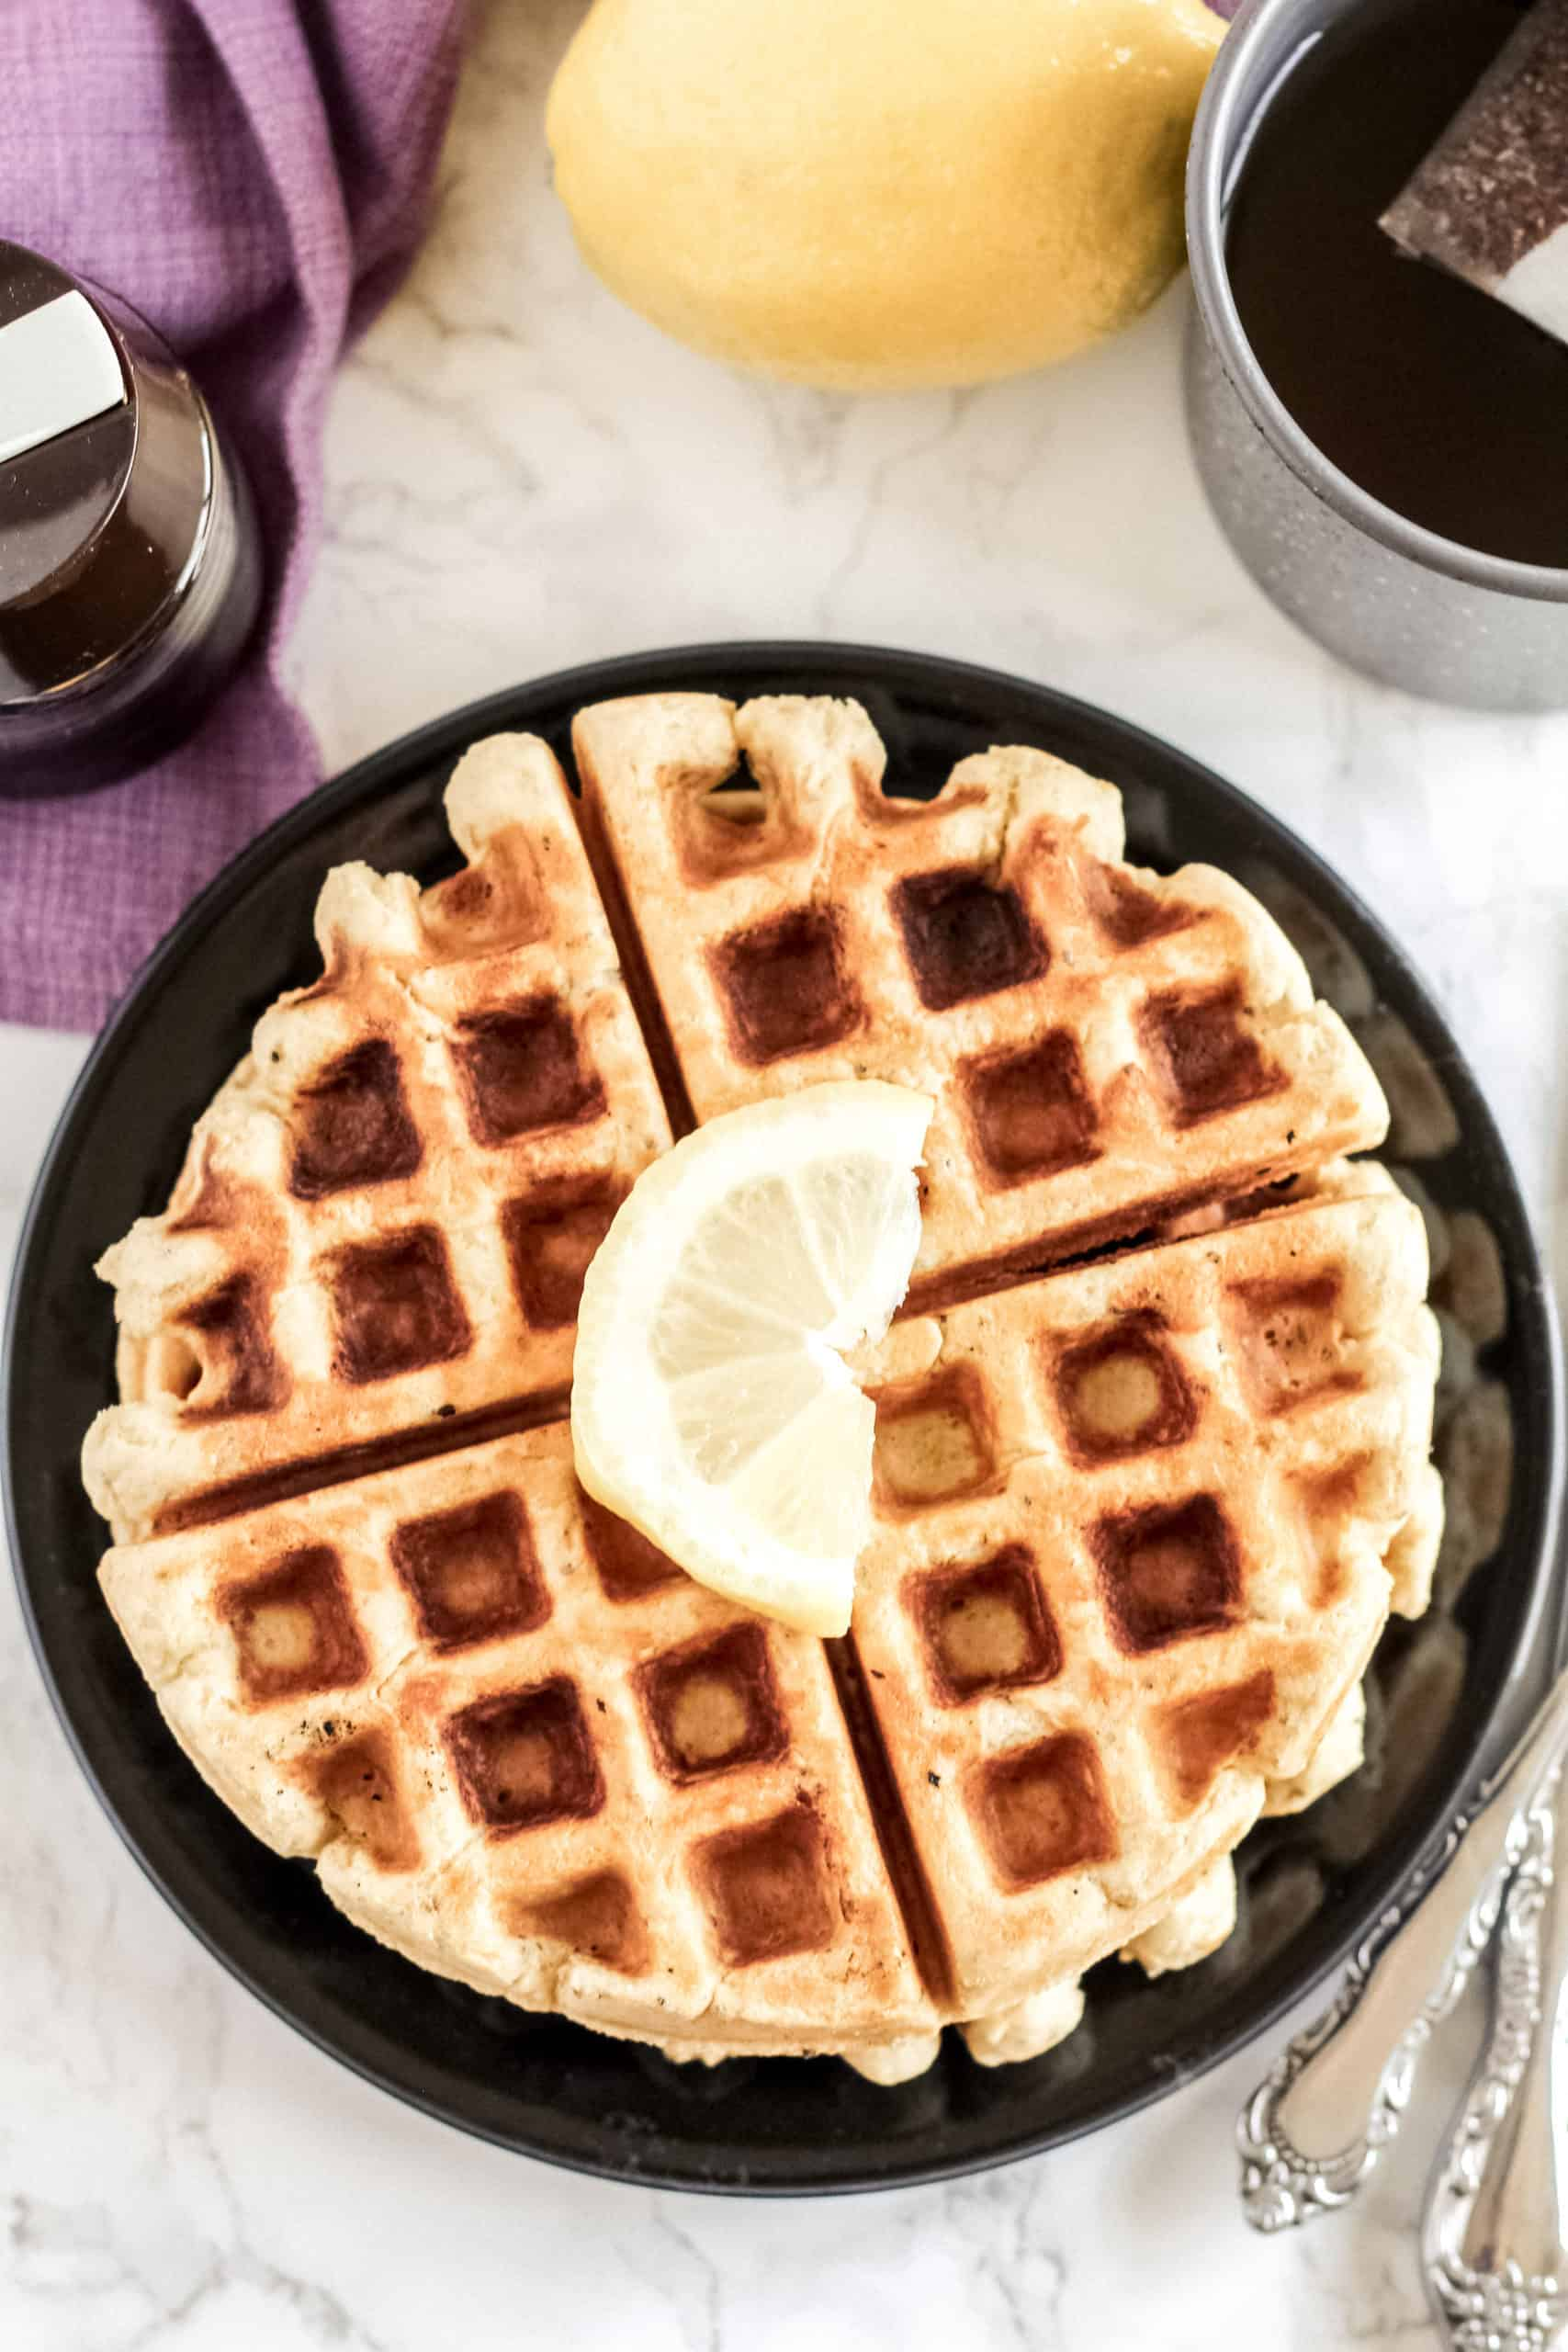 top view of waffles on a plate with a slice of lemon on top